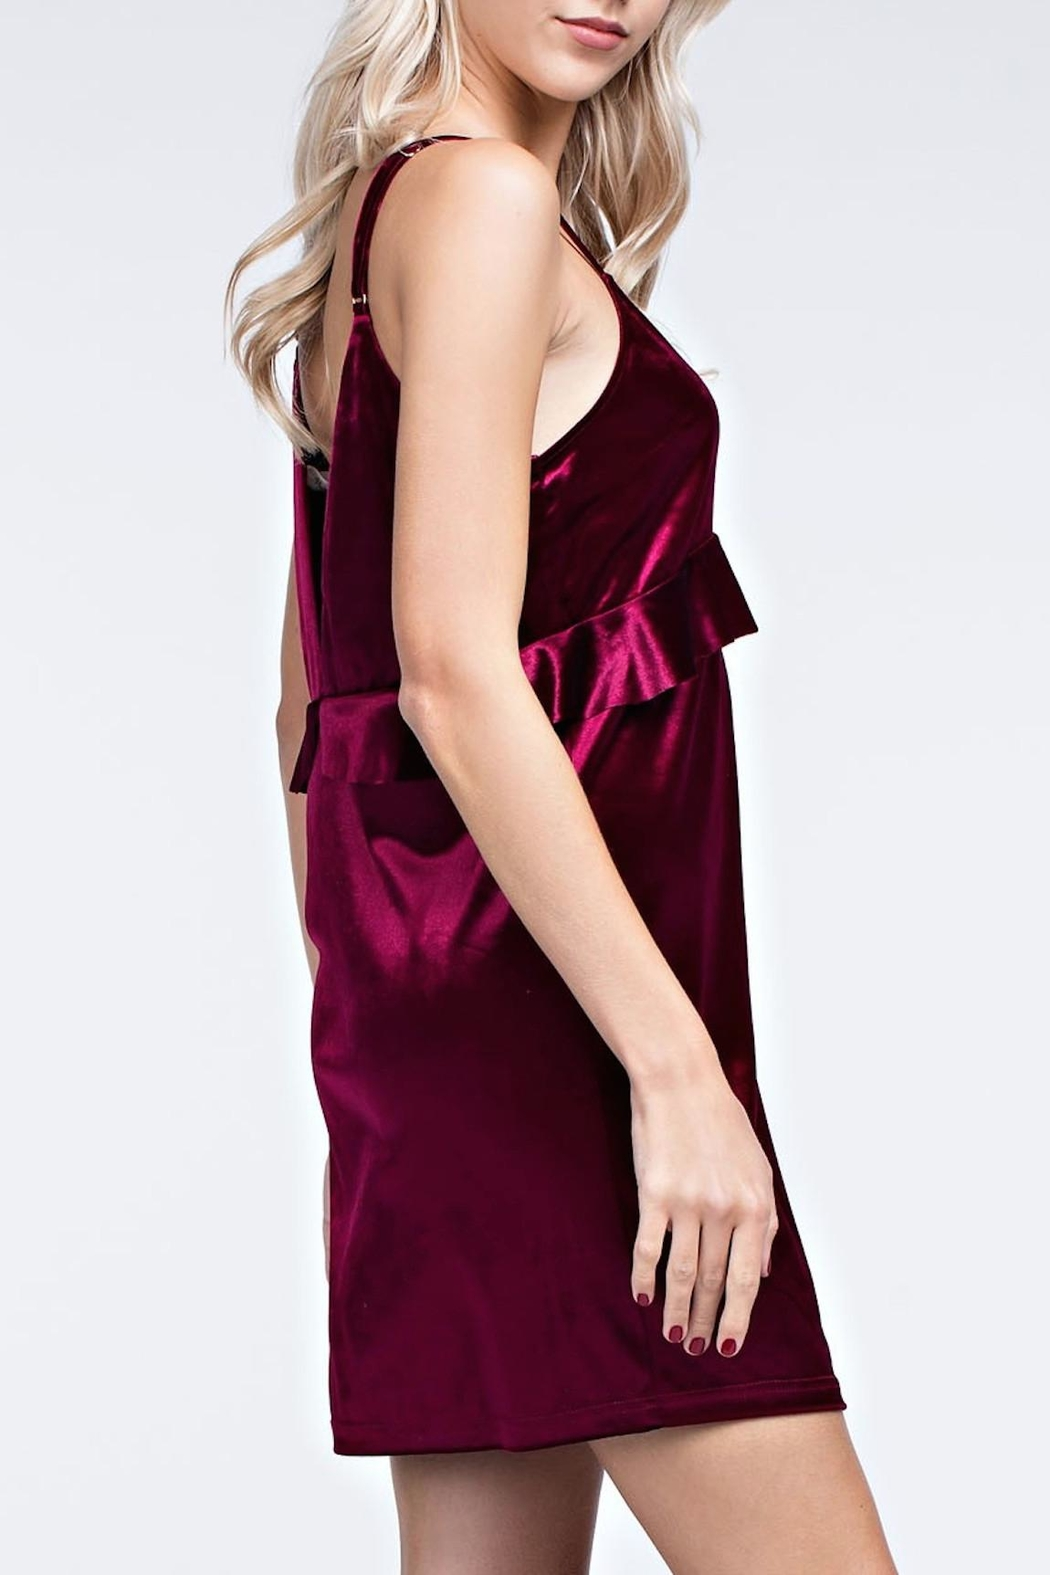 honey belle Burgundy Velvet Dress - Side Cropped Image